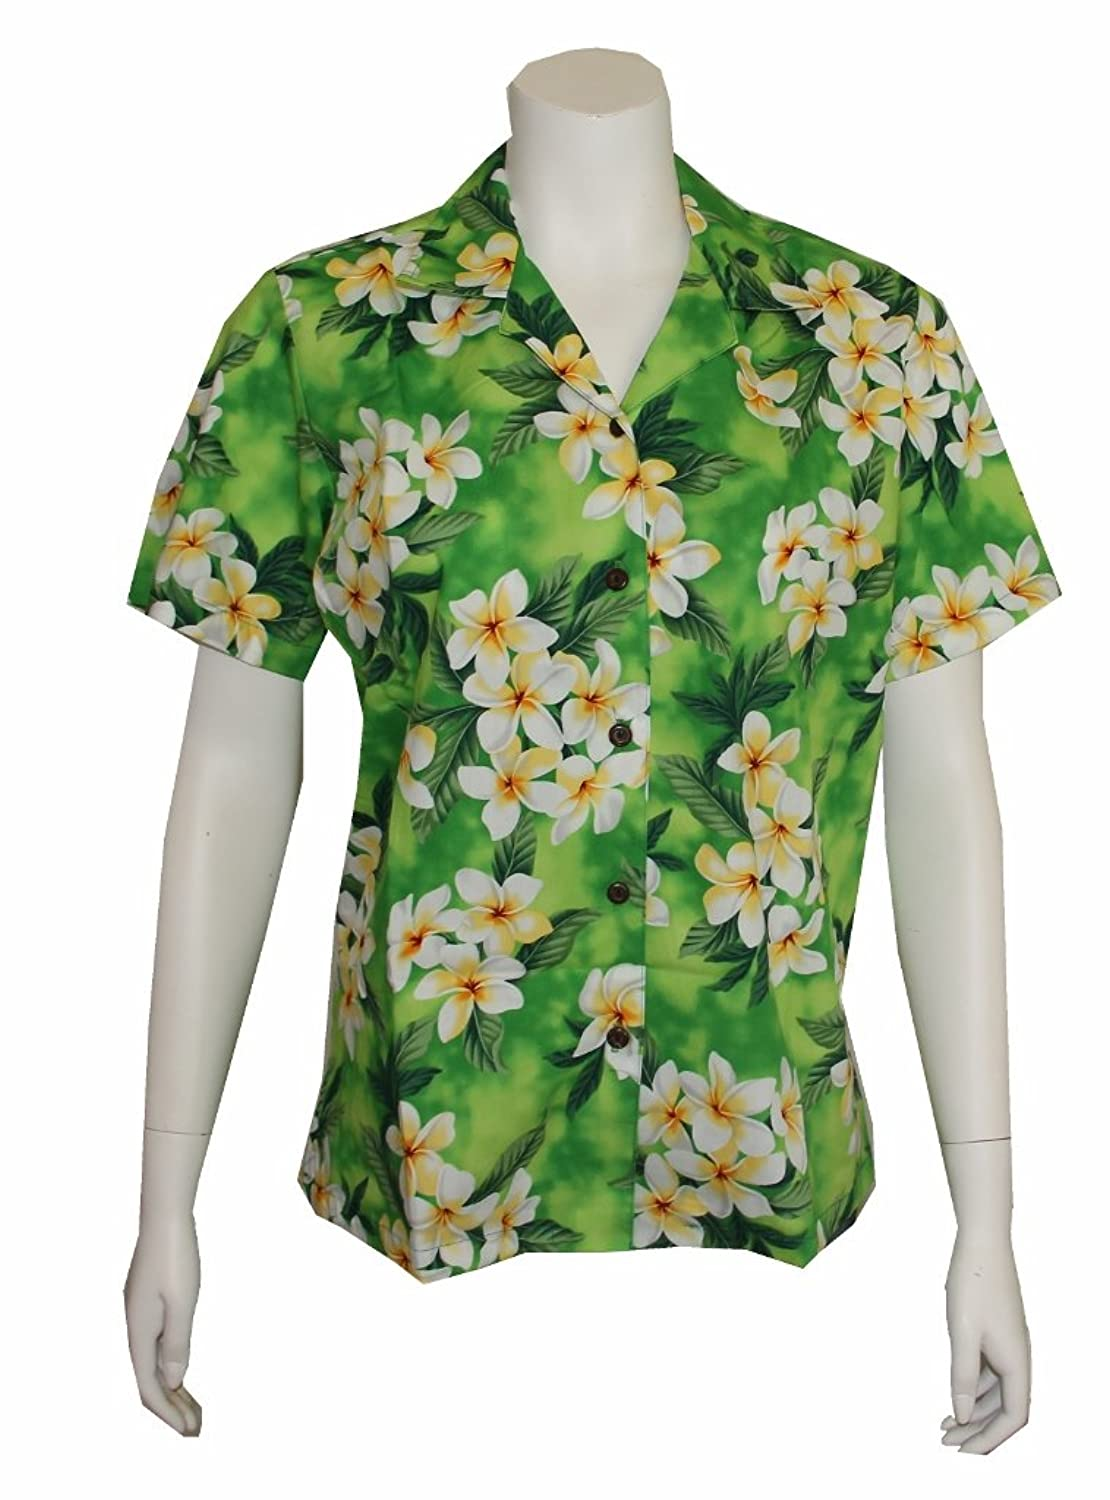 265f11dc9 Women\'s Hawaiian Shirt Size Chart (width=armpit to armpit; Length=top of  the collar to the bottom of the shirt; measurement of the shirt in inches):  Size S ...